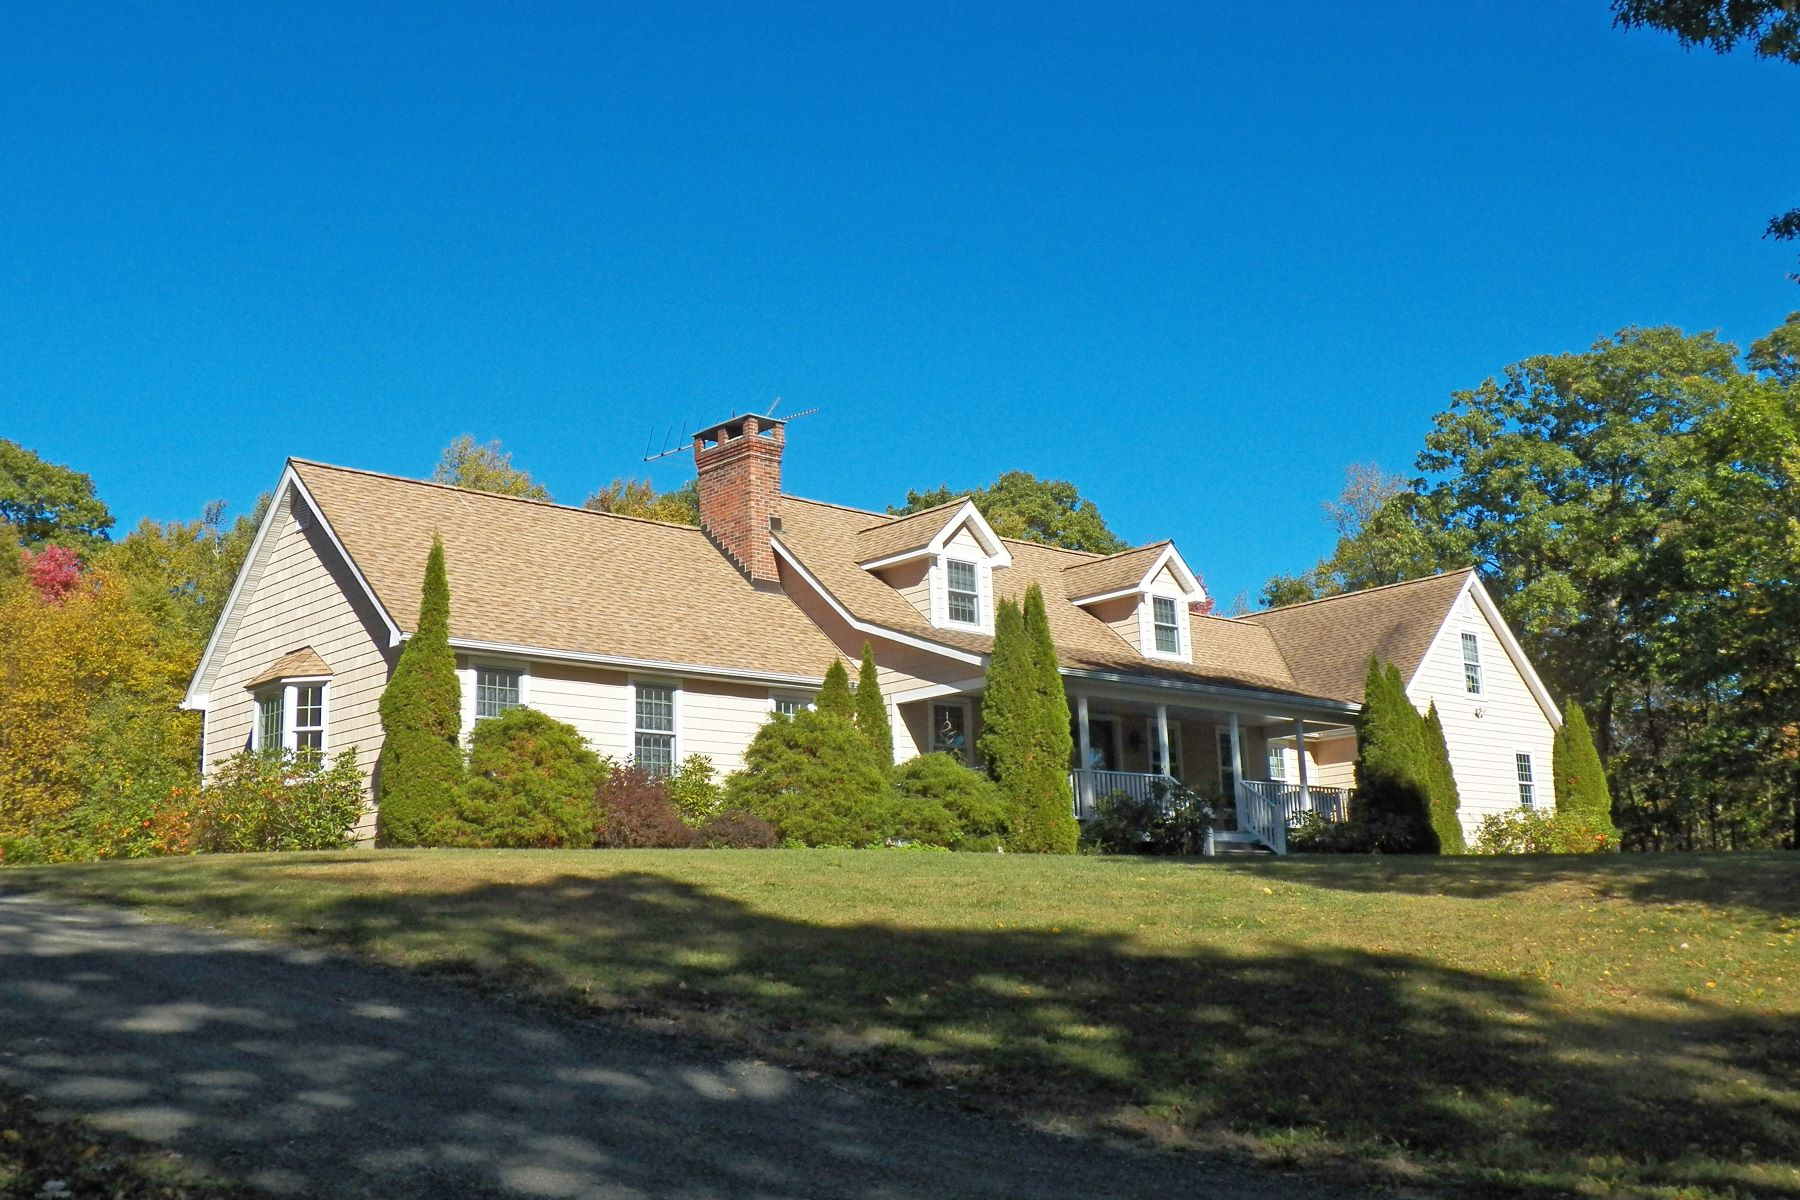 Single Family Home for Sale at Stunning Private Retreat on 103 acres 170 Rabbit Hill Rd Warren, Connecticut, 06777 United States